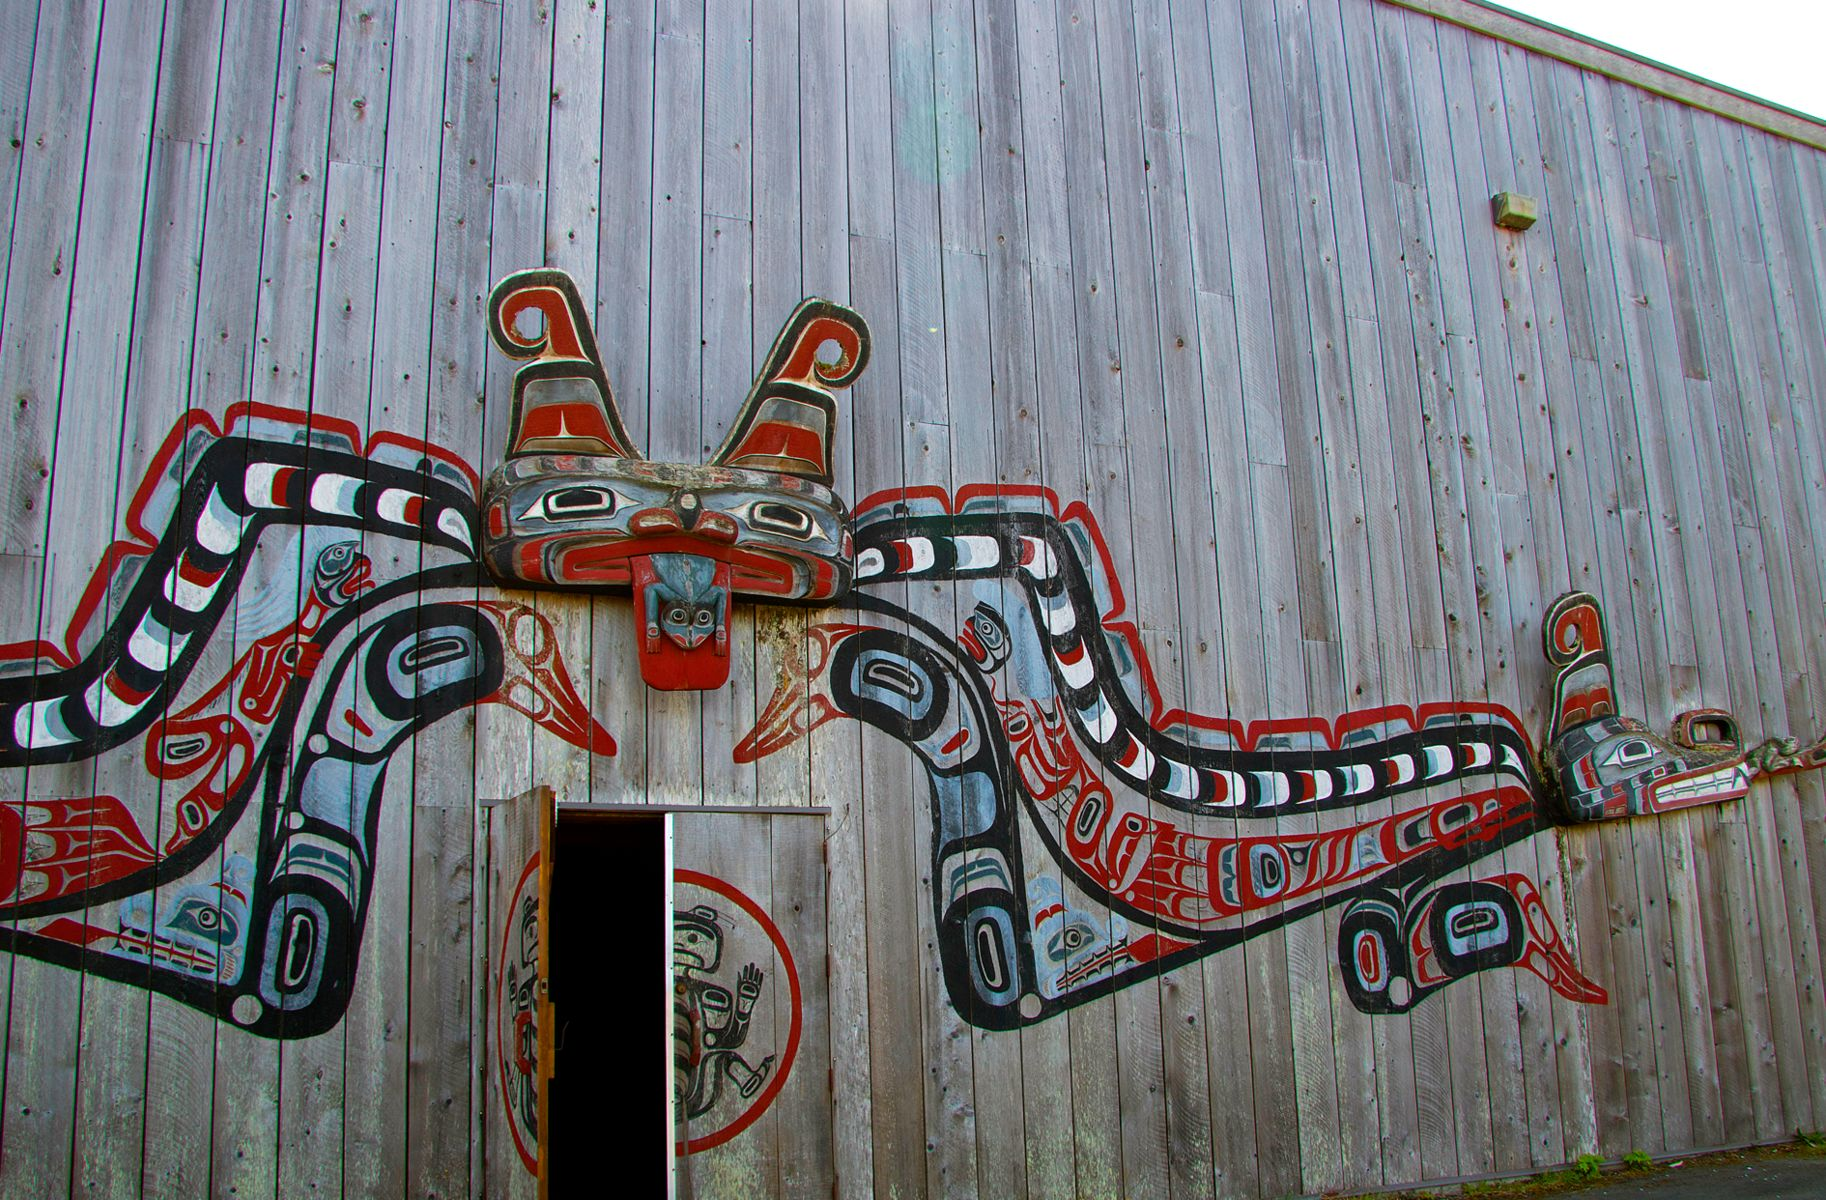 Wood plank building with a double-headed serpent painted over the doorway.